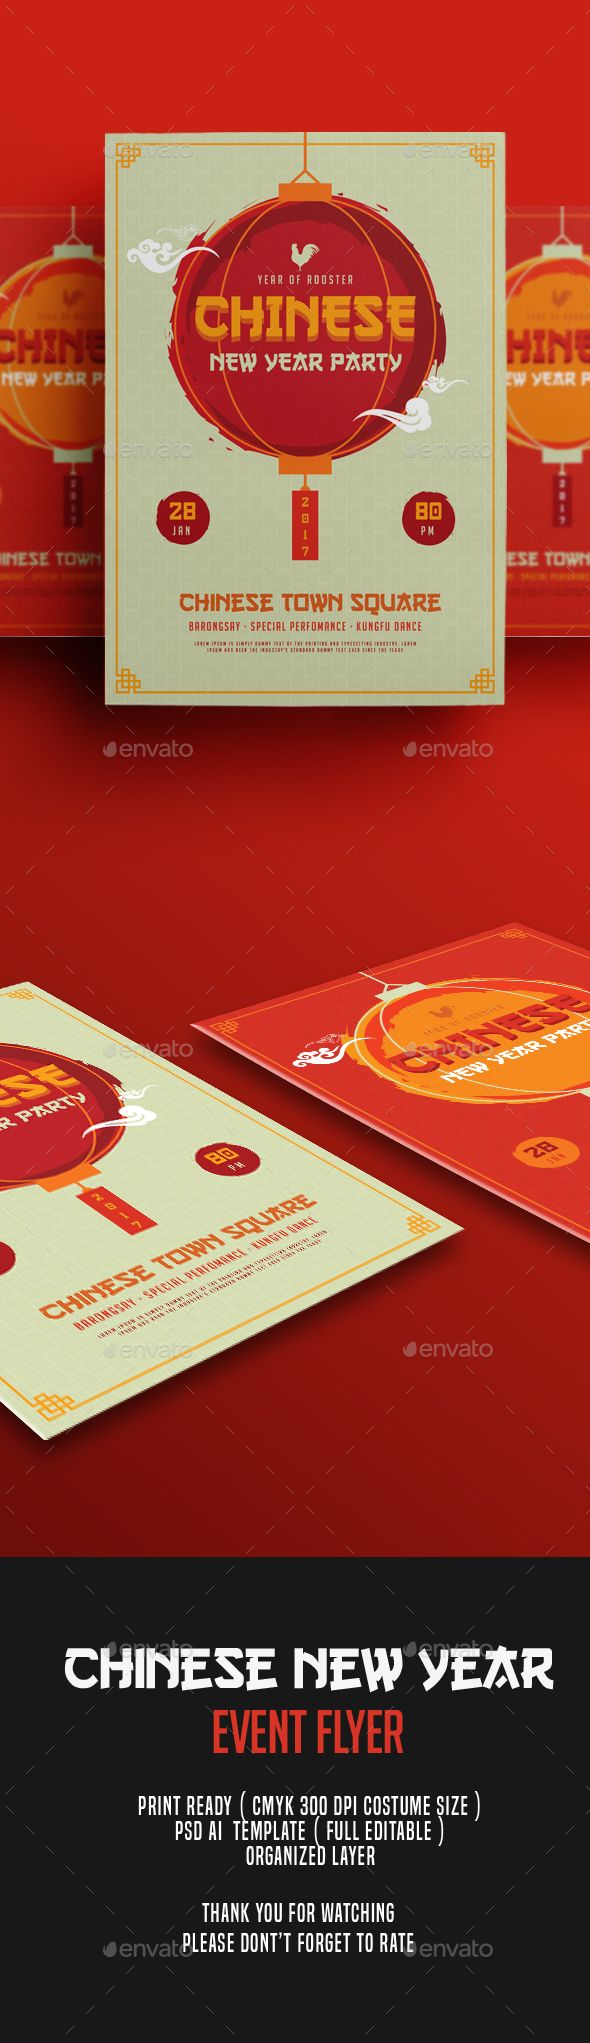 Chinese New Year Flyer | Ai illustrator, Flyer template and Template